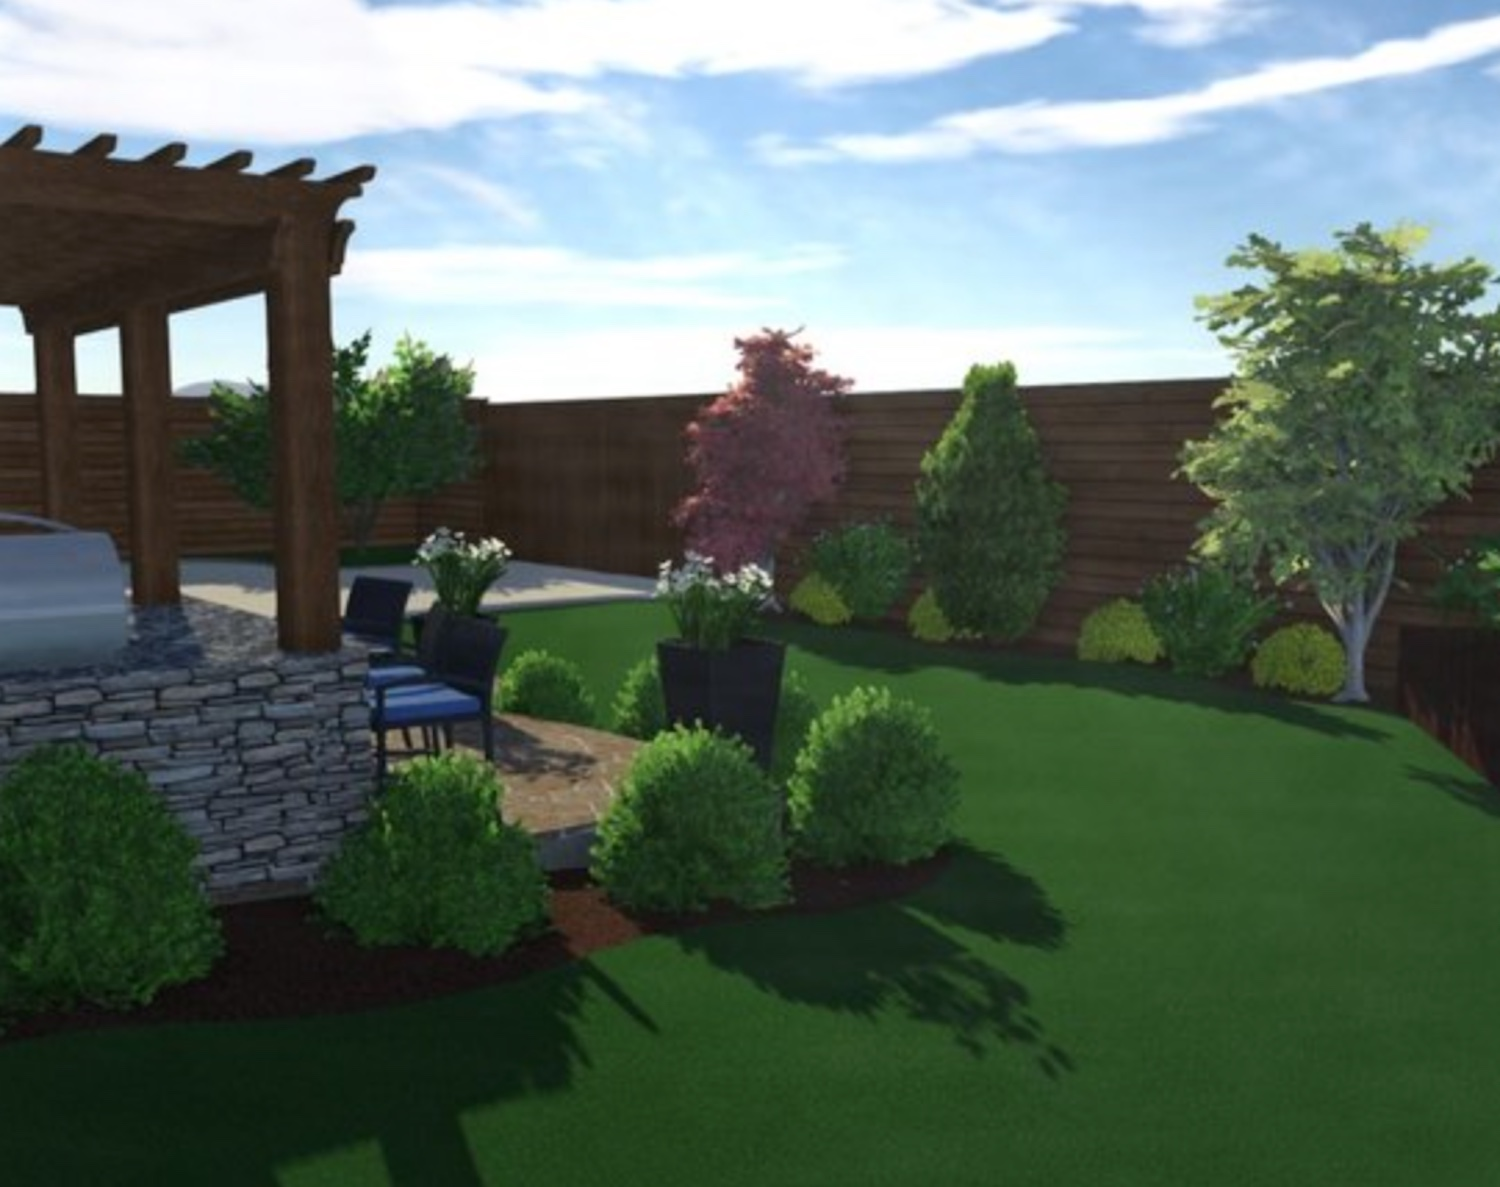 outdoor_living_landscape_design.jpg